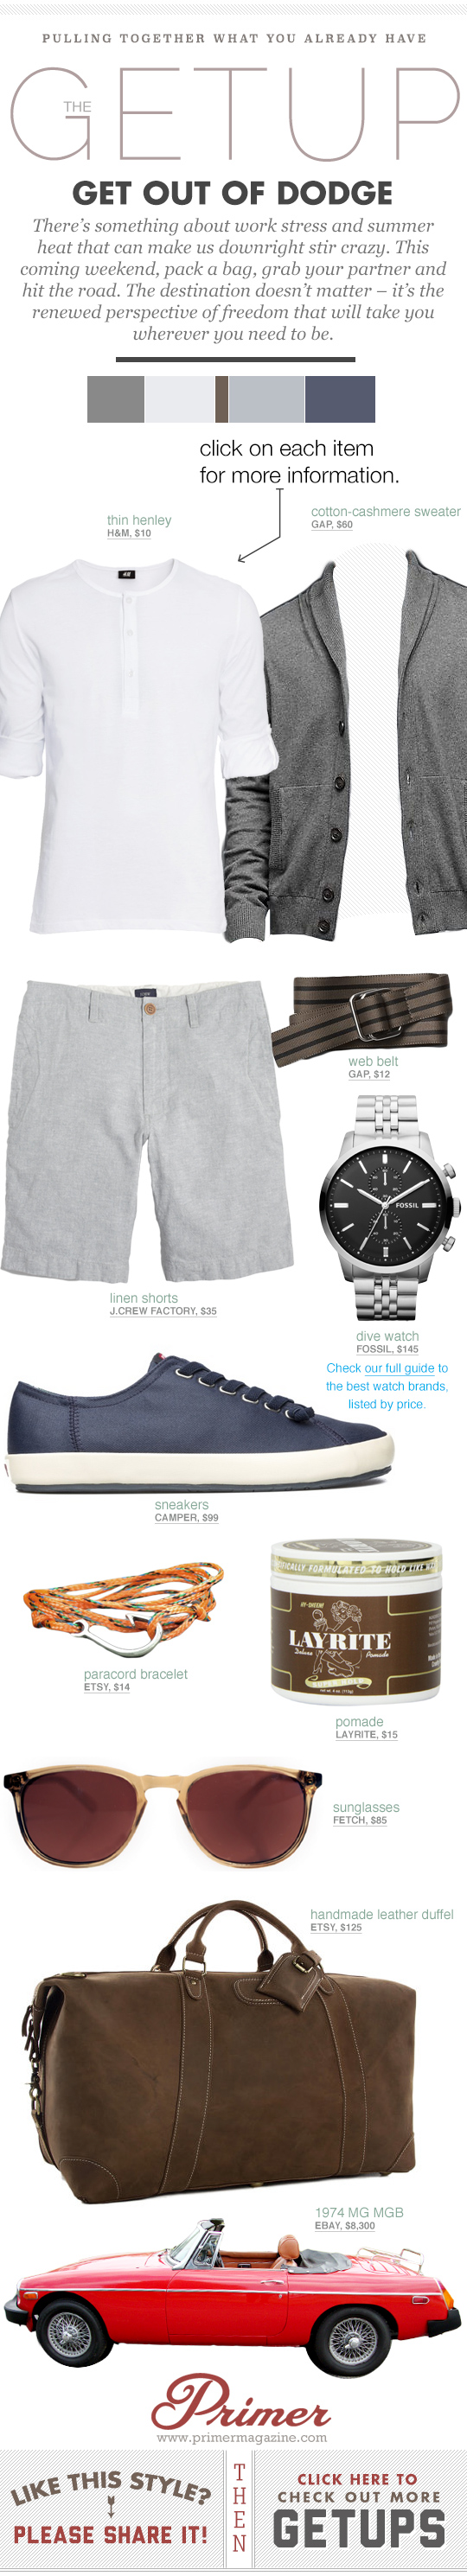 Get Out of Dodge Getup with gray sweater, white henley, linen shorts, and blue sneakers